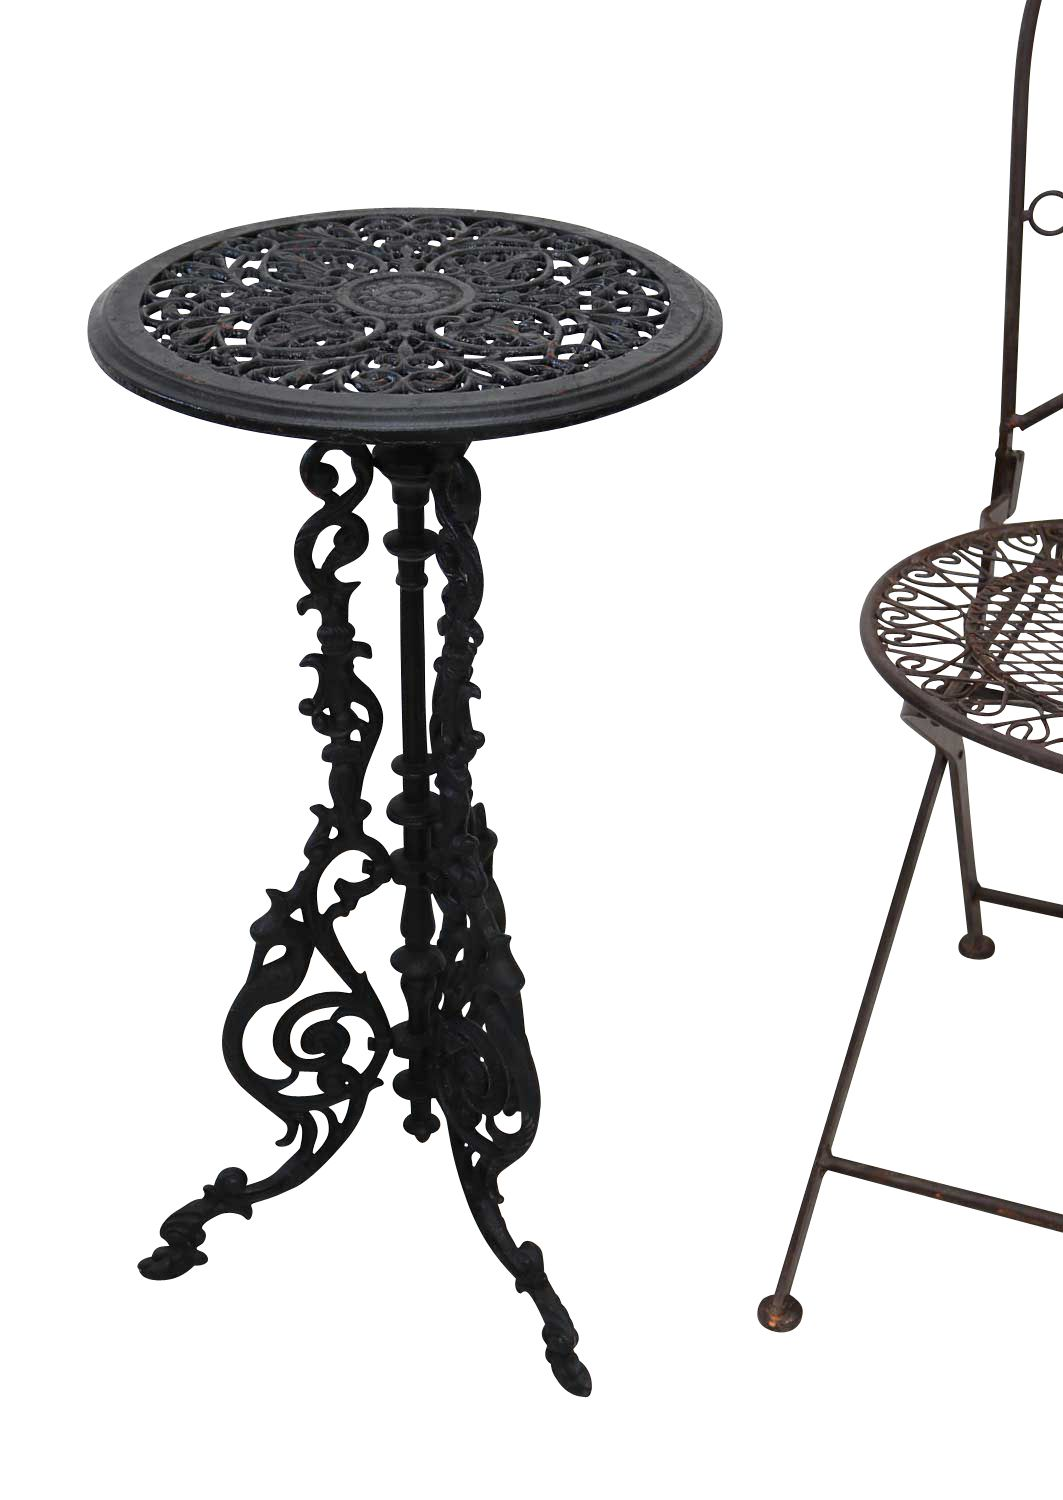 Garden table 10kg cast iron 72cm side table iron antique for Cast iron end table